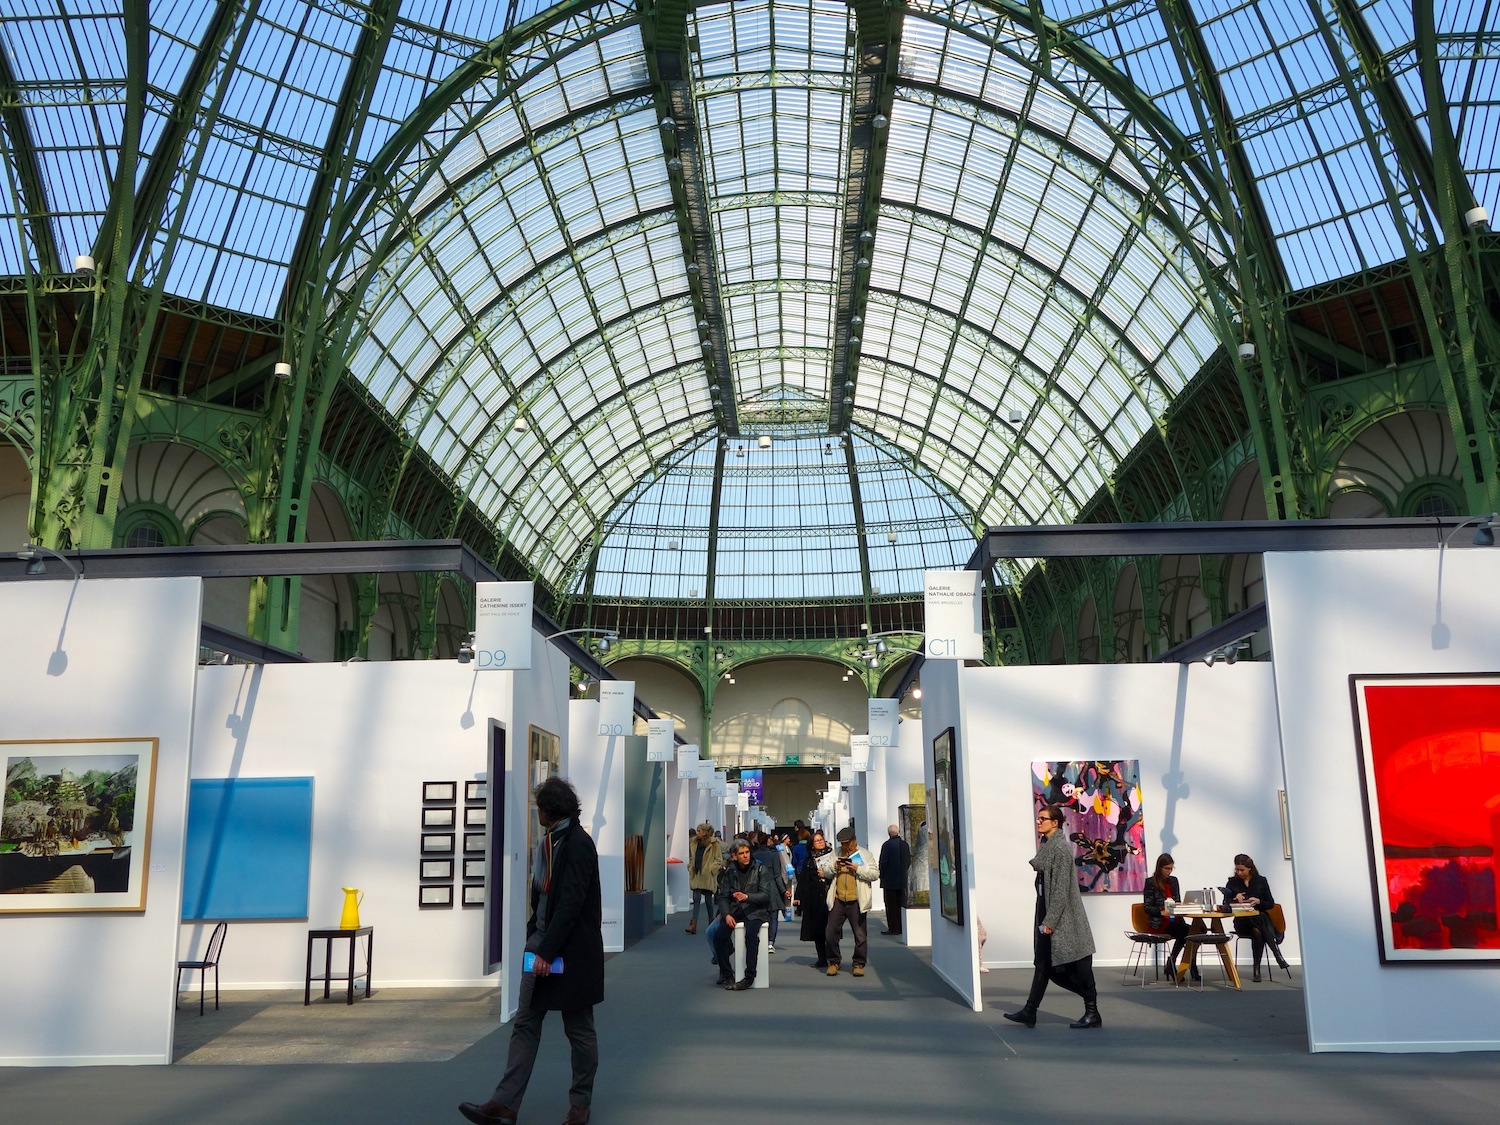 Art fairs offer a wide range of choices, hence their increasing popularity.